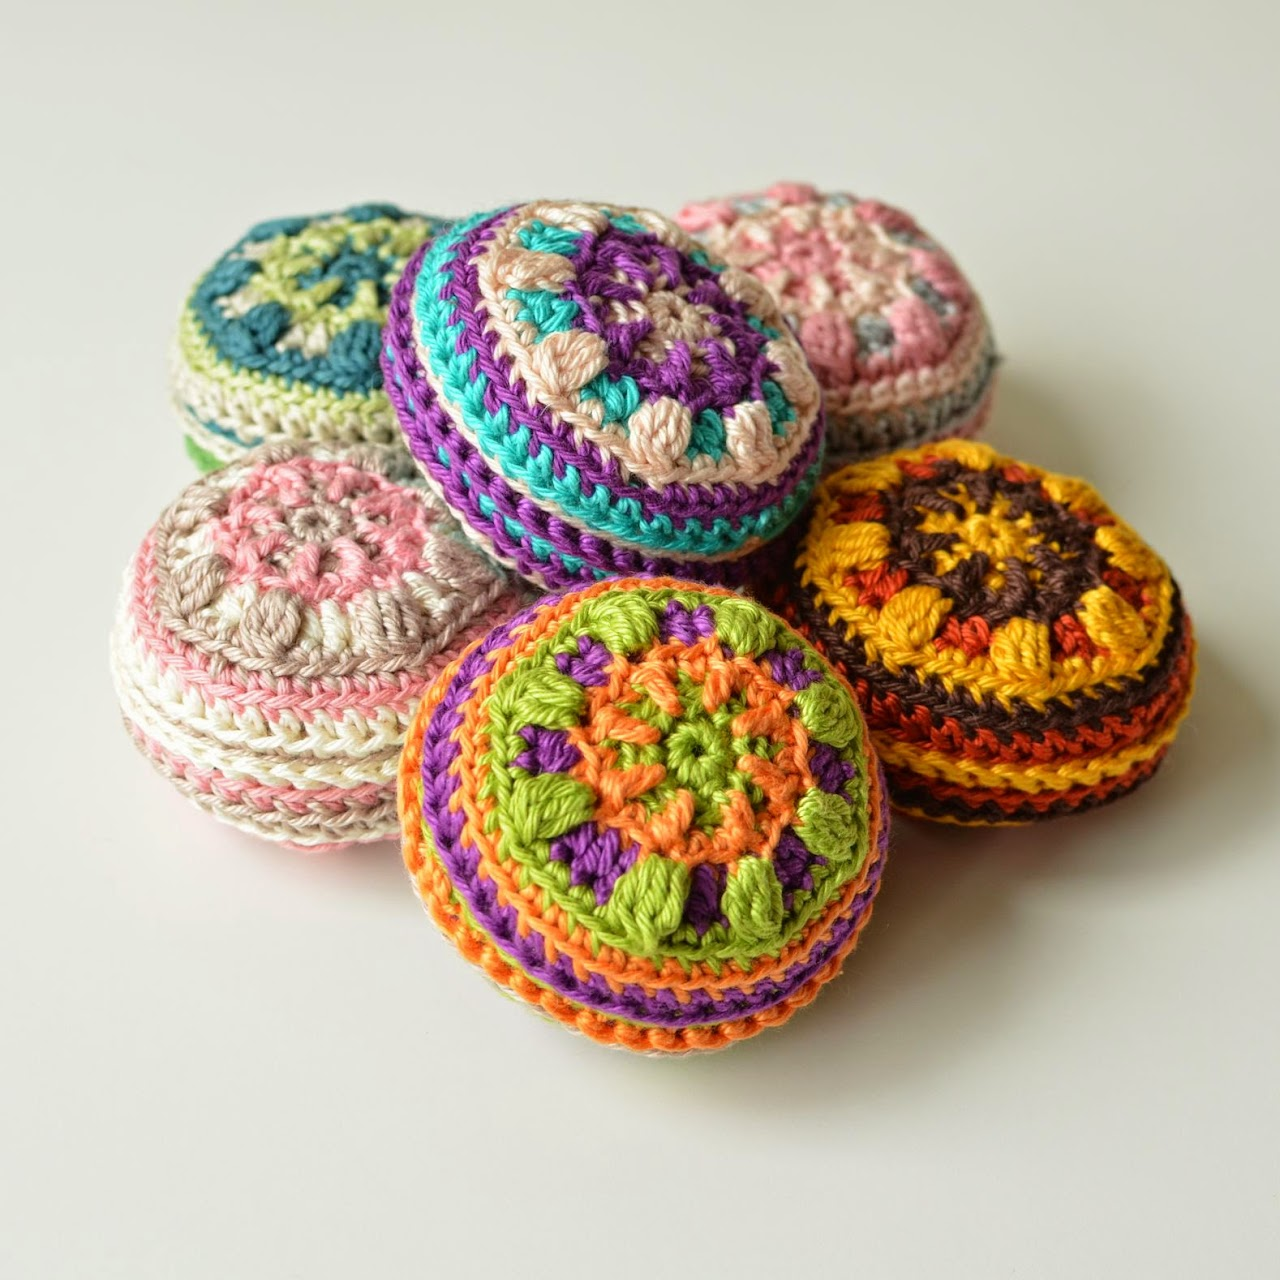 Mandala pin cushion - free pattern by www.lillabjorncrochet.com